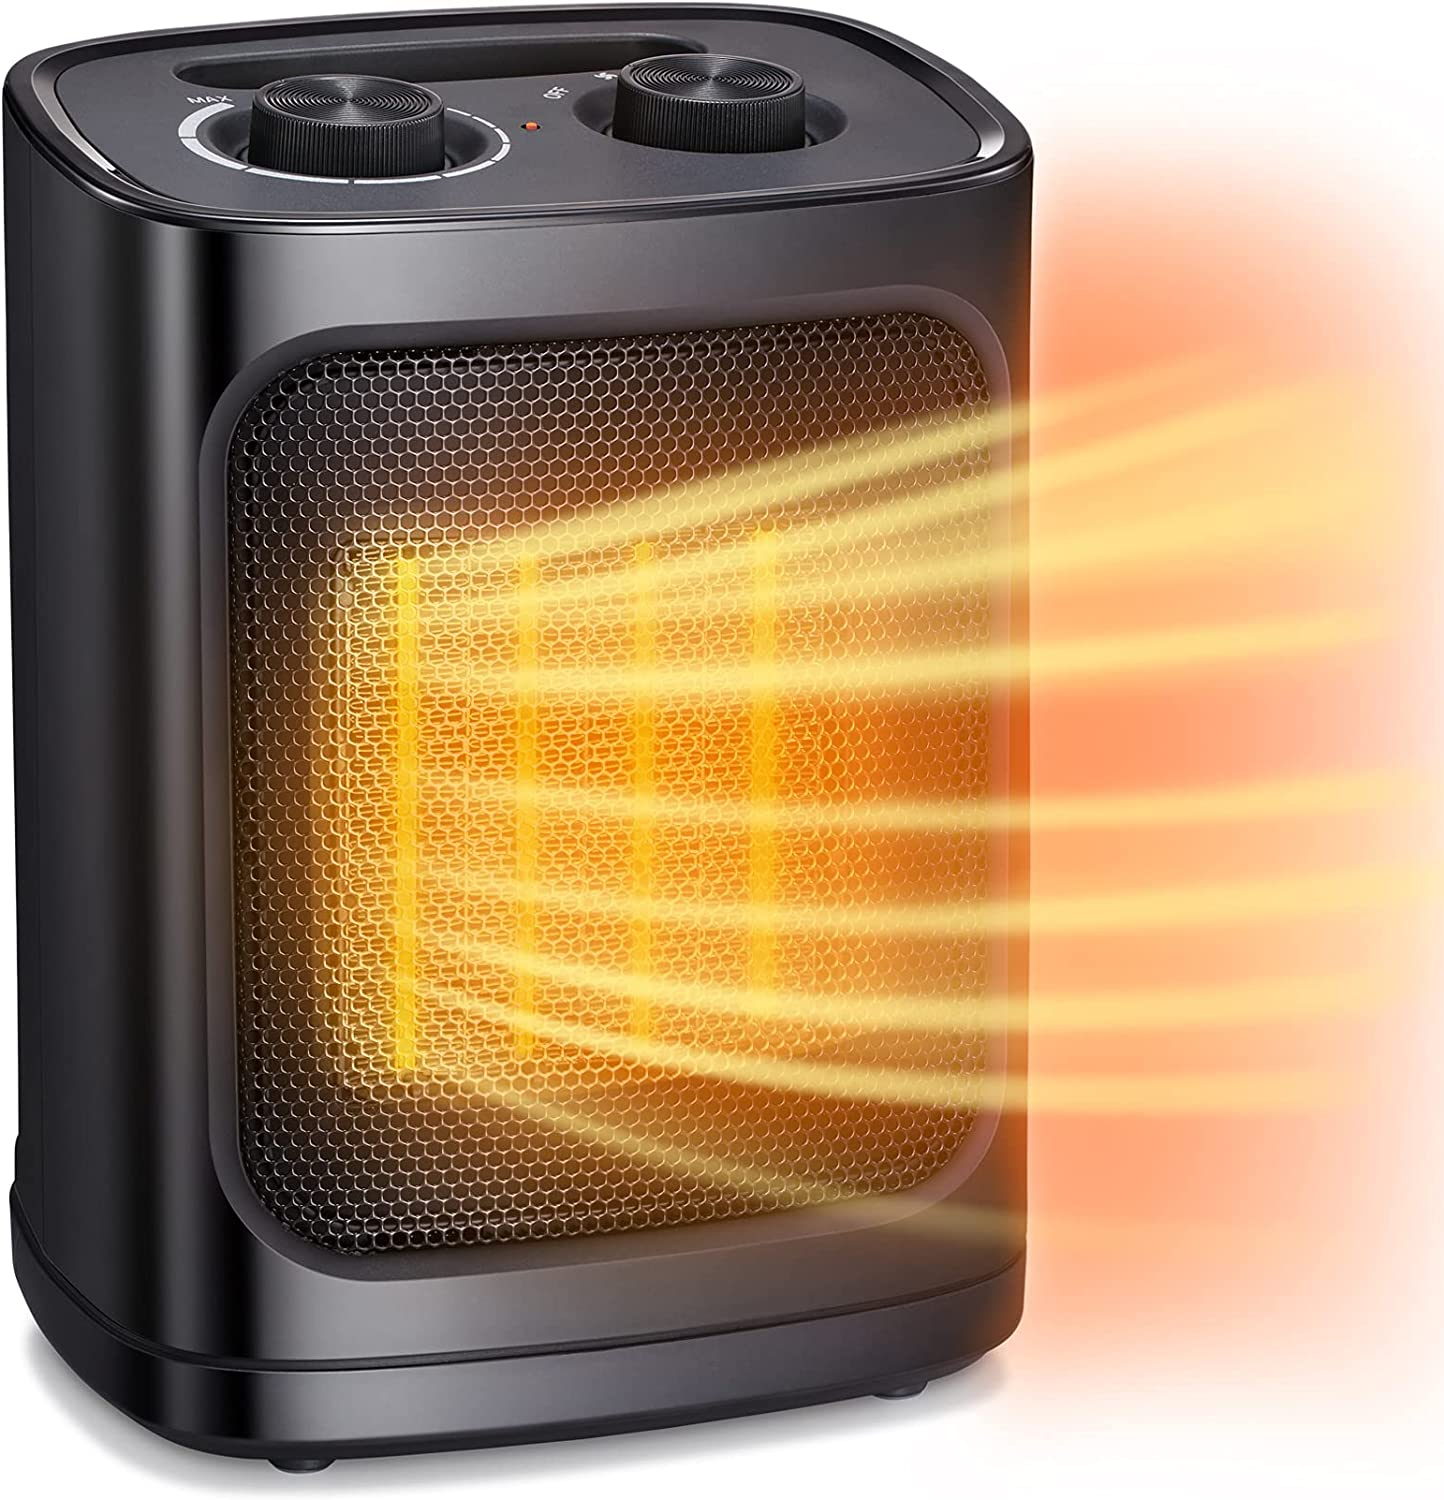 Antarctic Star Space Heater, Portable Electric Heater Ceramic Fan Small Mini Heaters Indoor Use ETL Certified 1500W/750W 3 Modes Thermostat, Tip Overheat Protection Quiet Office Room Desk Home